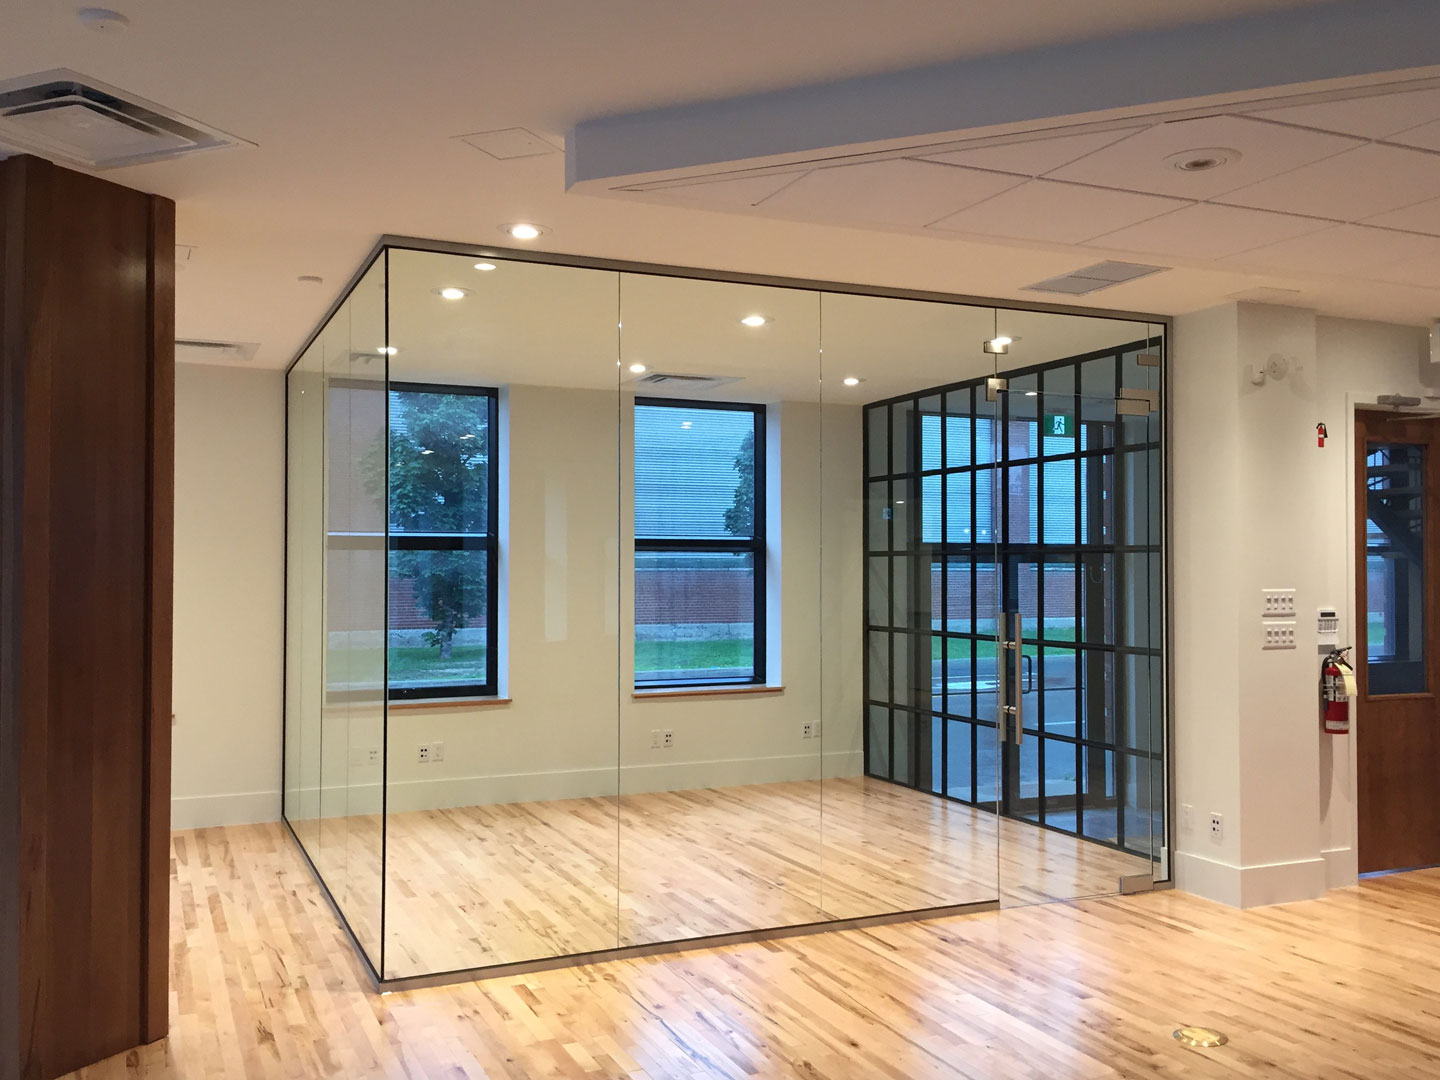 with of most spaces for partitions making glass office partitioning the small